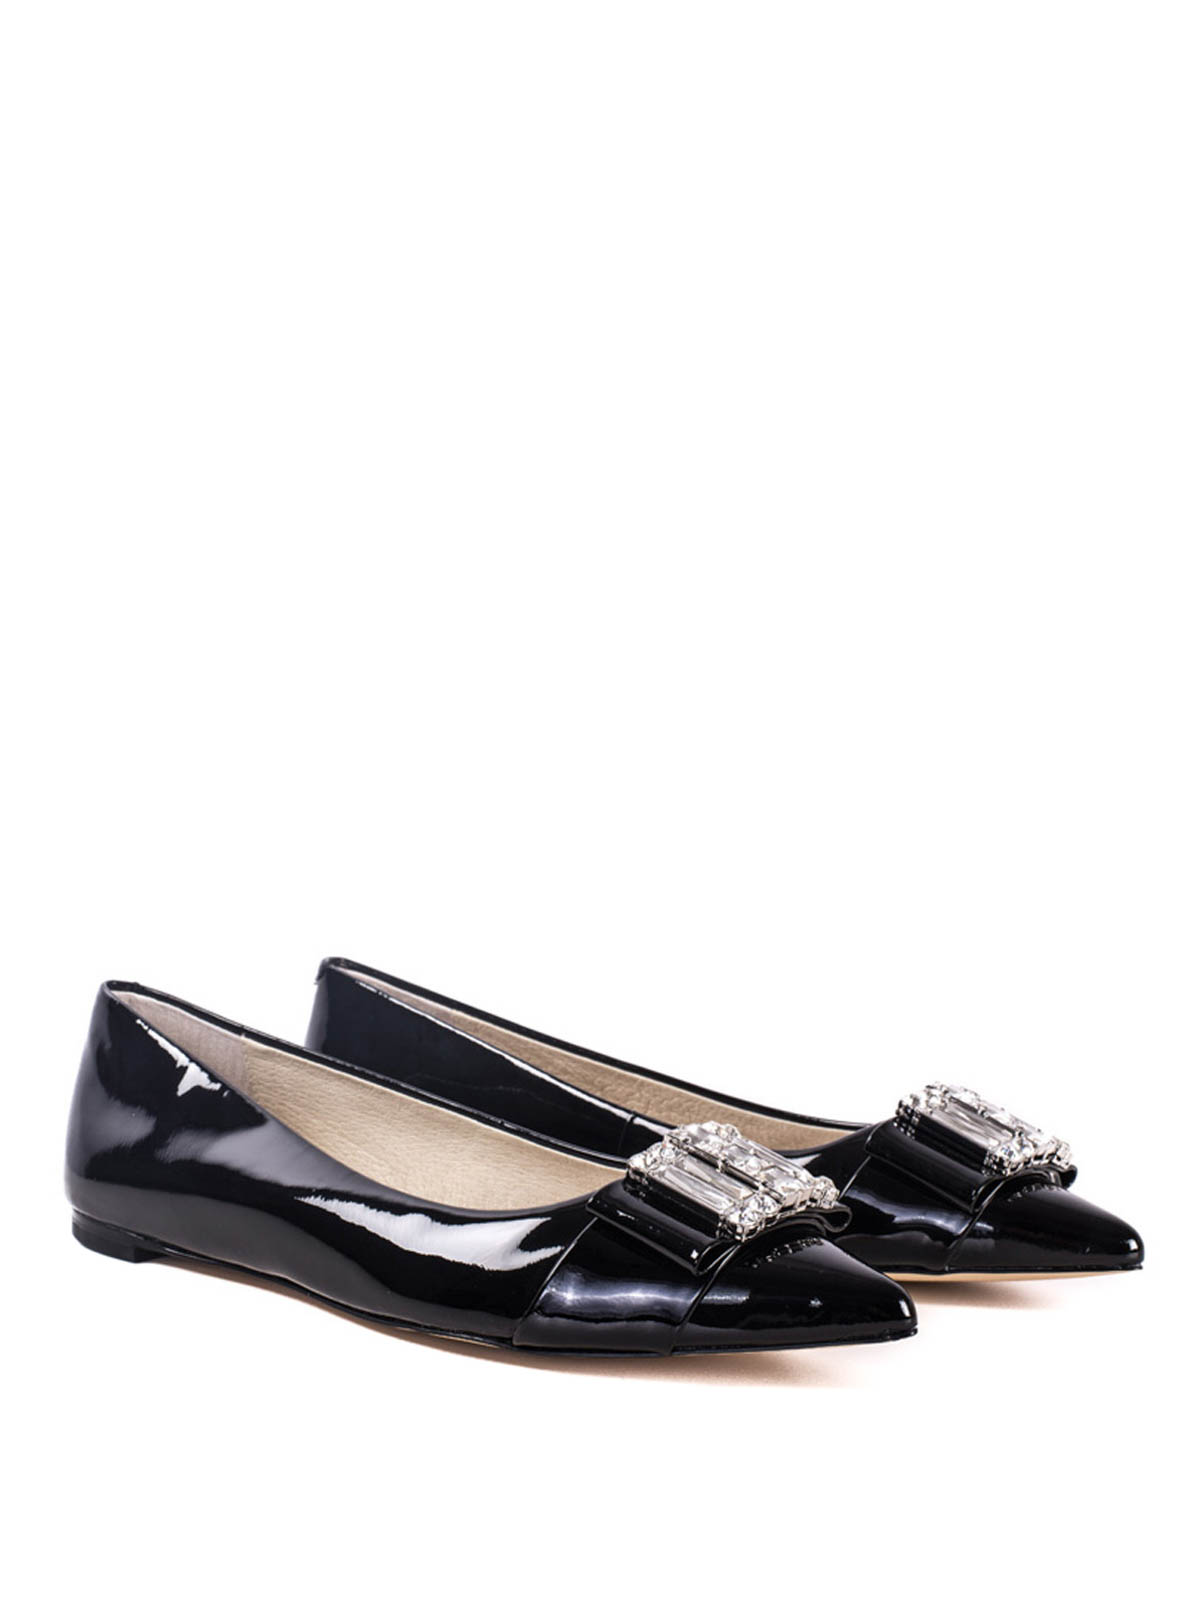 patent leather flats by michael kors flat shoes